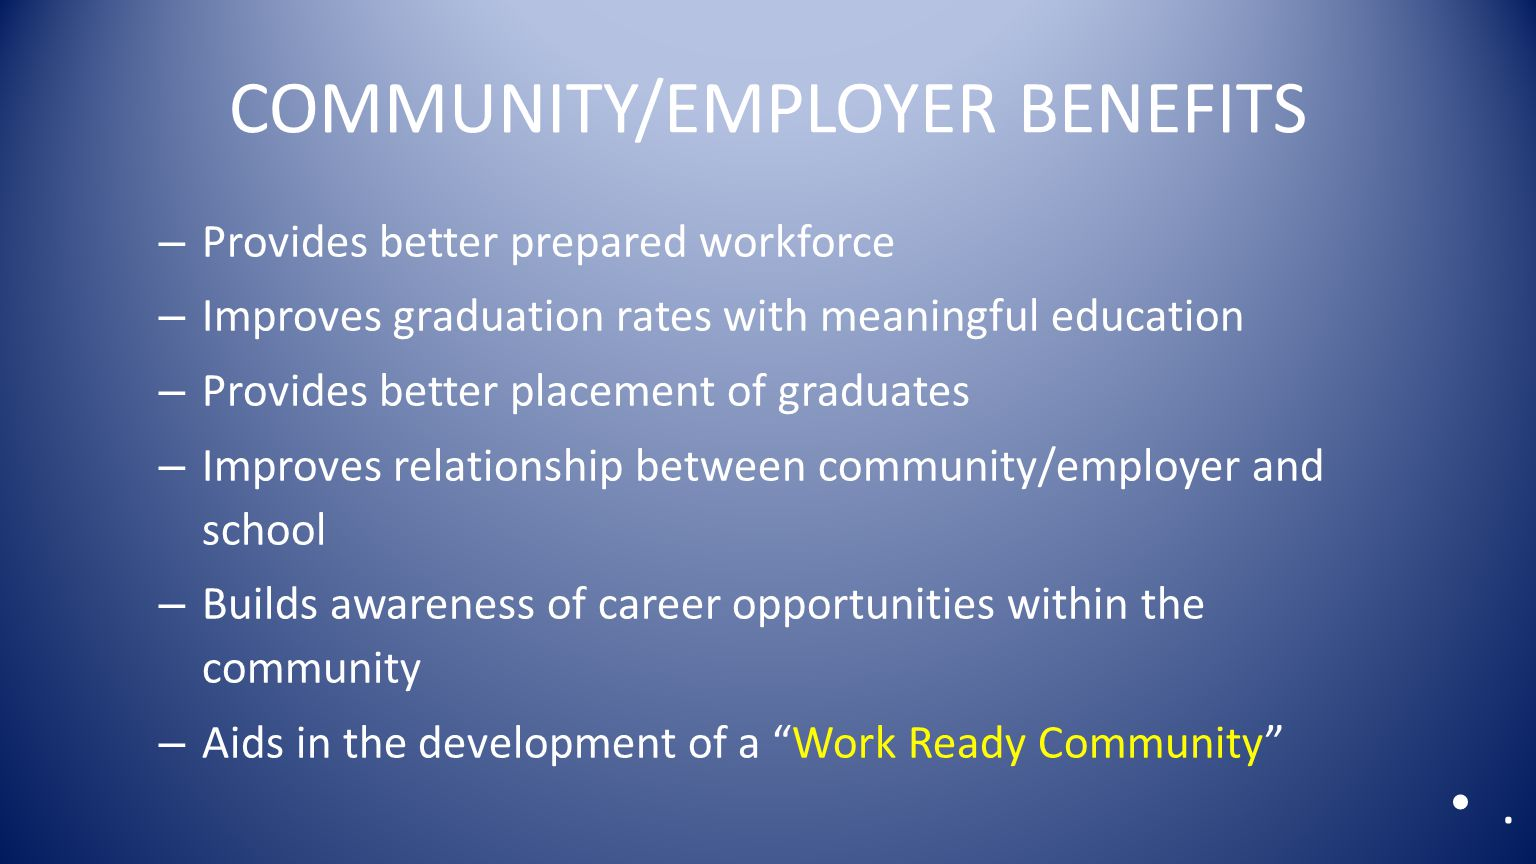 COMMUNITY/EMPLOYER BENEFITS – Provides better prepared workforce – Improves graduation rates with meaningful education – Provides better placement of graduates – Improves relationship between community/employer and school – Builds awareness of career opportunities within the community – Aids in the development of a Work Ready Community .